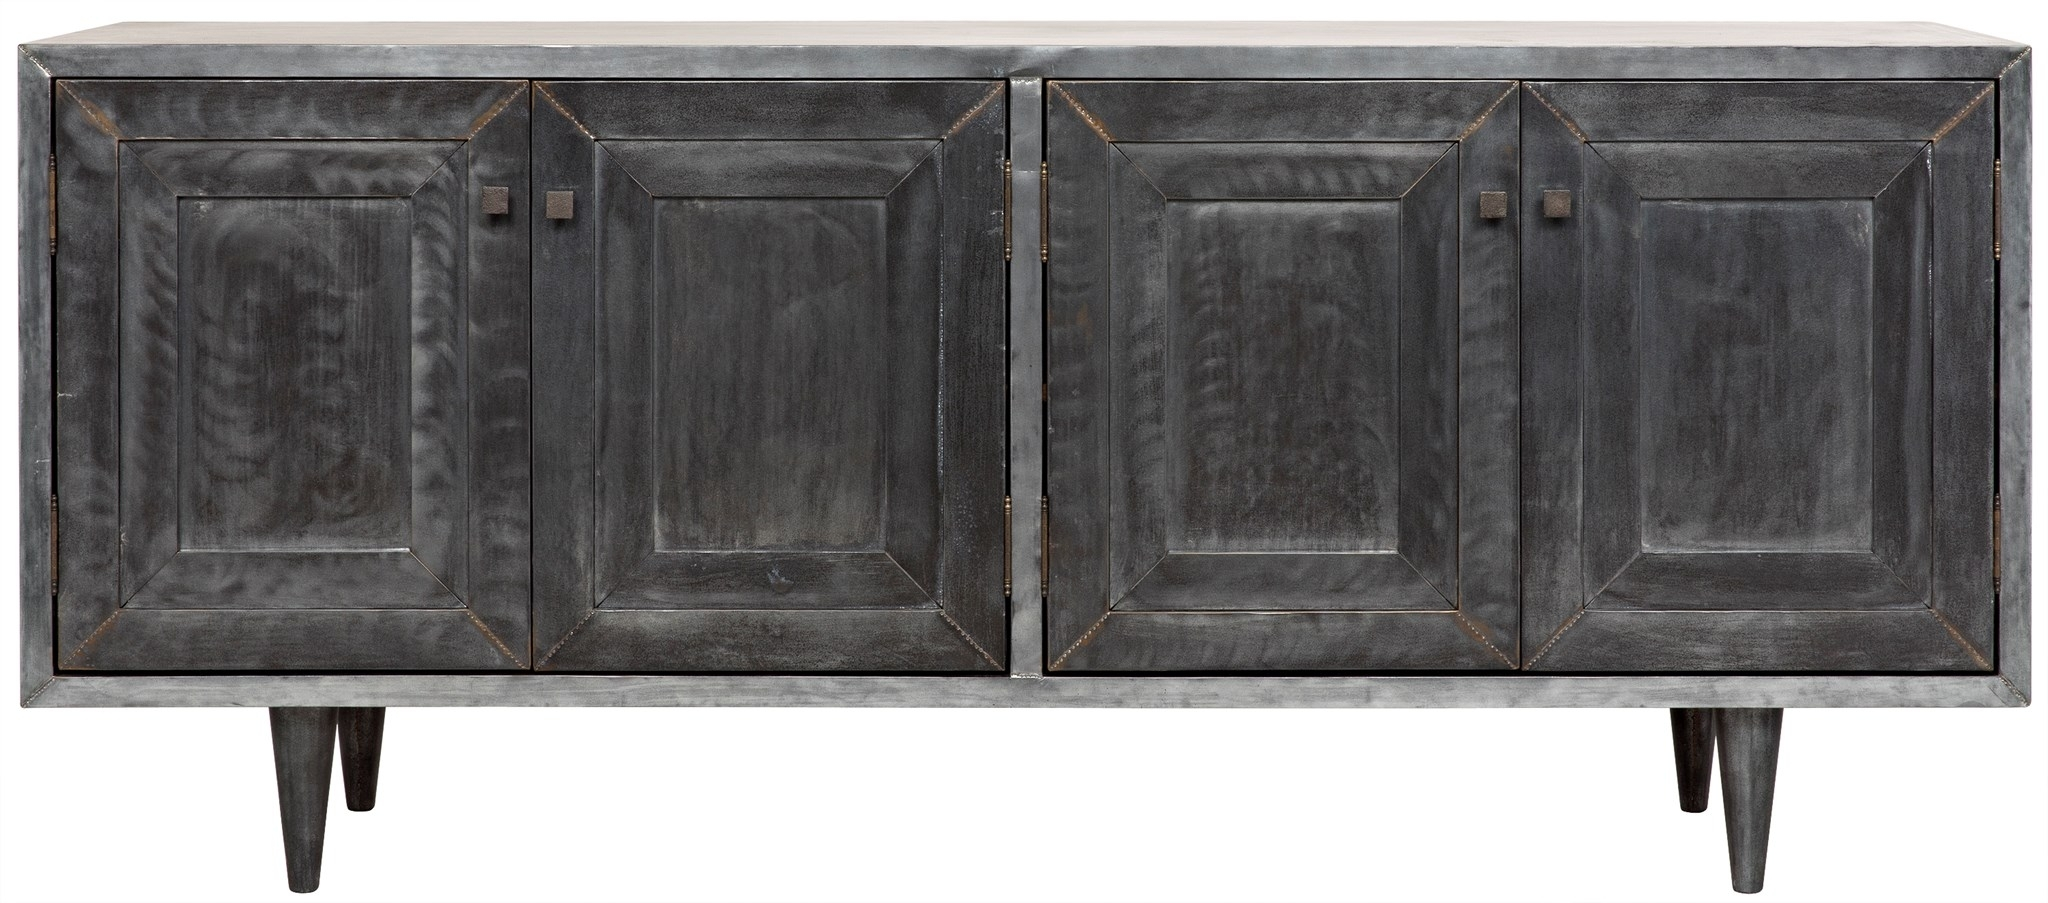 Cabinets, Consoles & Sofa Tables | Htgt Furniture with Gunmetal Perforated Brass Sideboards (Image 11 of 30)